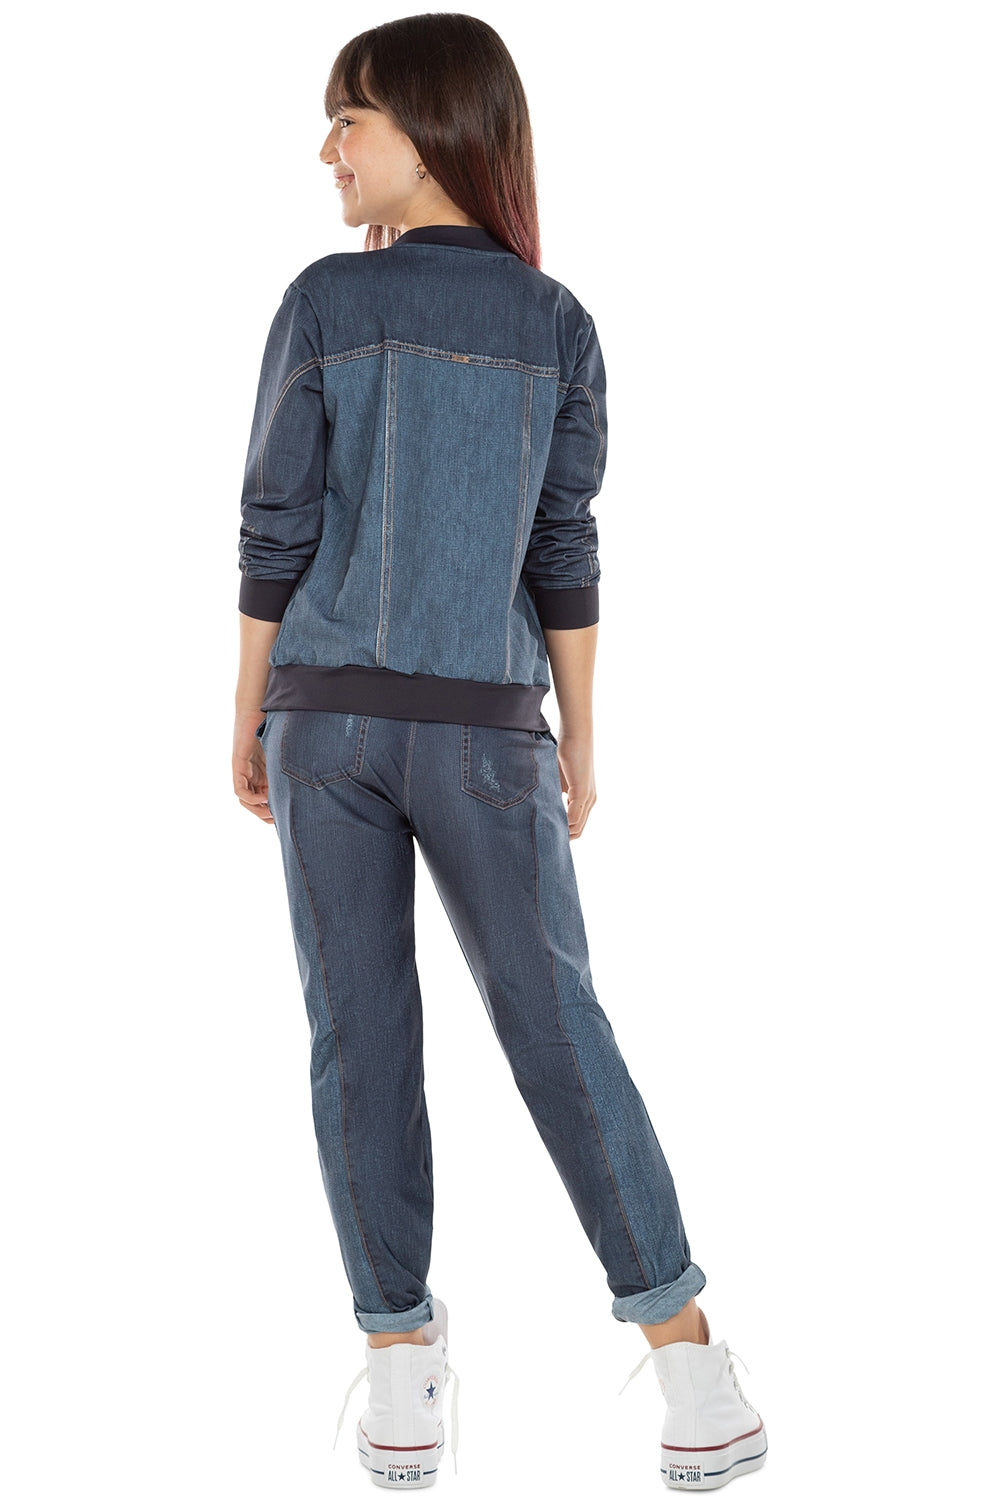 Daily Kids Denim Boyfriend Pants 2